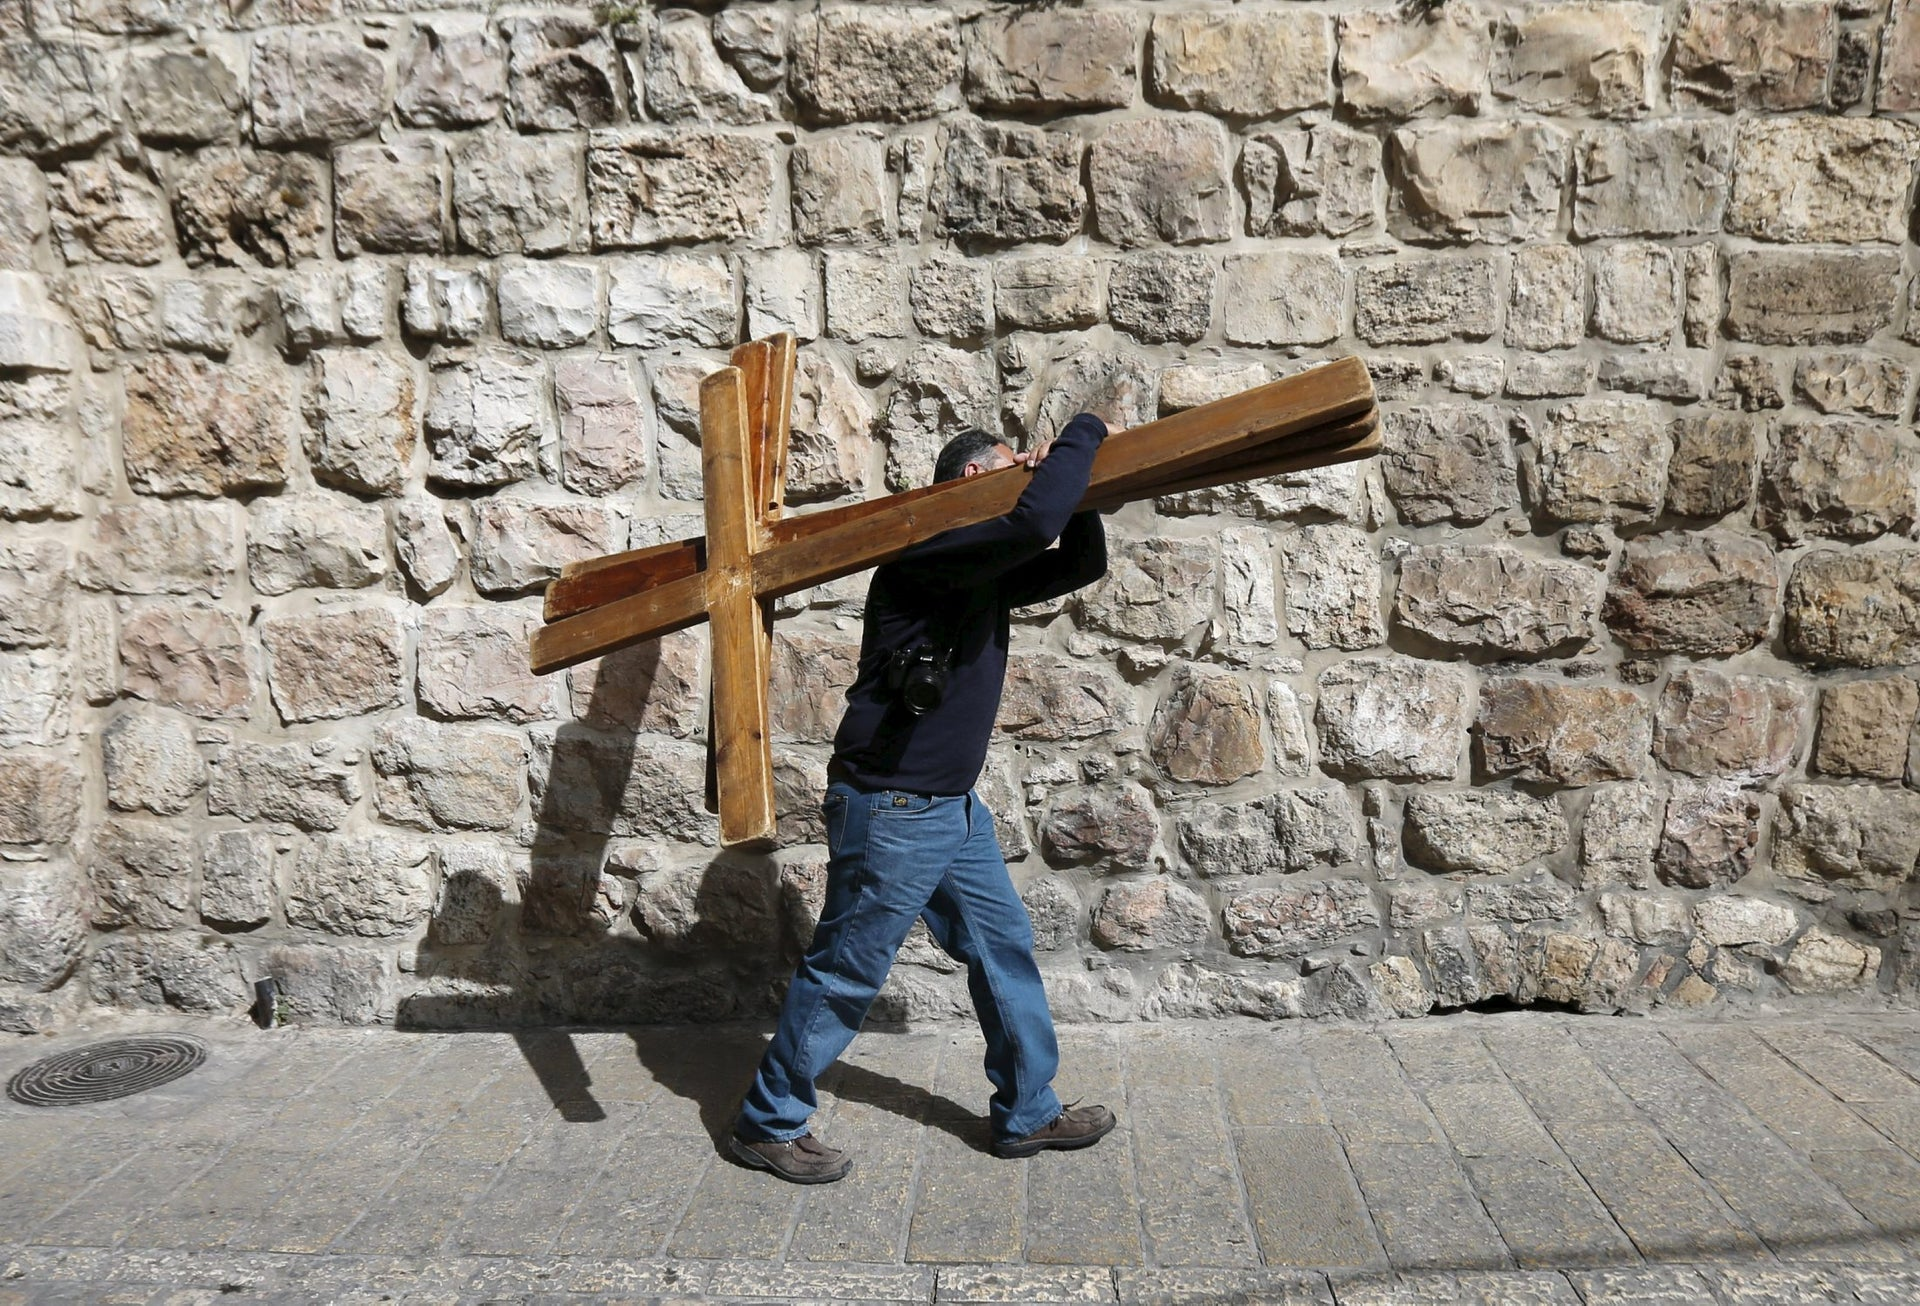 A man holds up crosses during a Good Friday procession through the Via Dolorosa in Jerusalem's Old City March 25, 2016. REUTERS/Ammar Awad